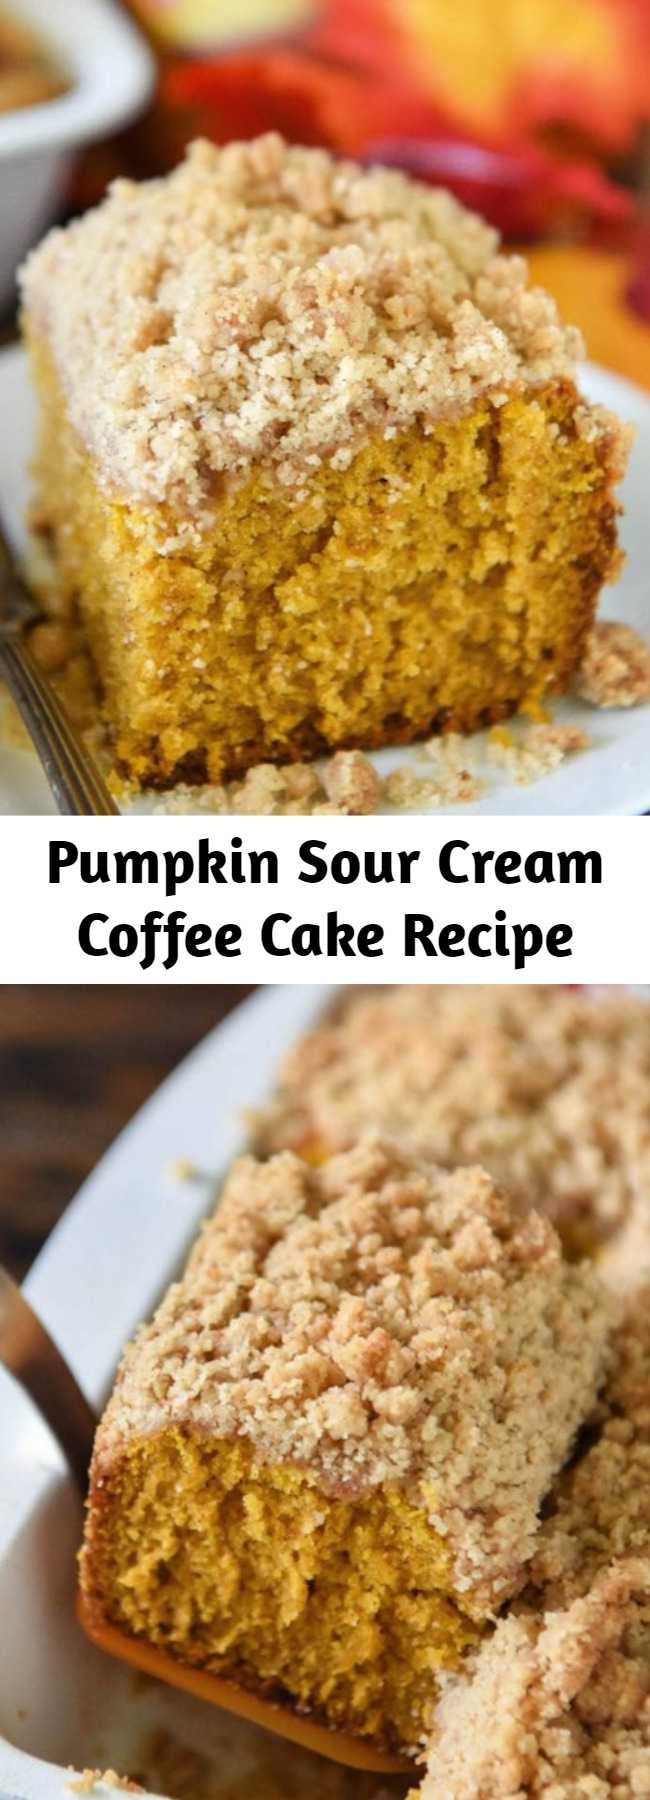 Pumpkin Sour Cream Coffee Cake Recipe - An extra moist pumpkin spice cake (made from scratch) is topped with an amazing cinnamon crumb topping! Serve it with coffee for breakfast or for dessert! #Pumpkin #CoffeeCake #Dessert #Cake